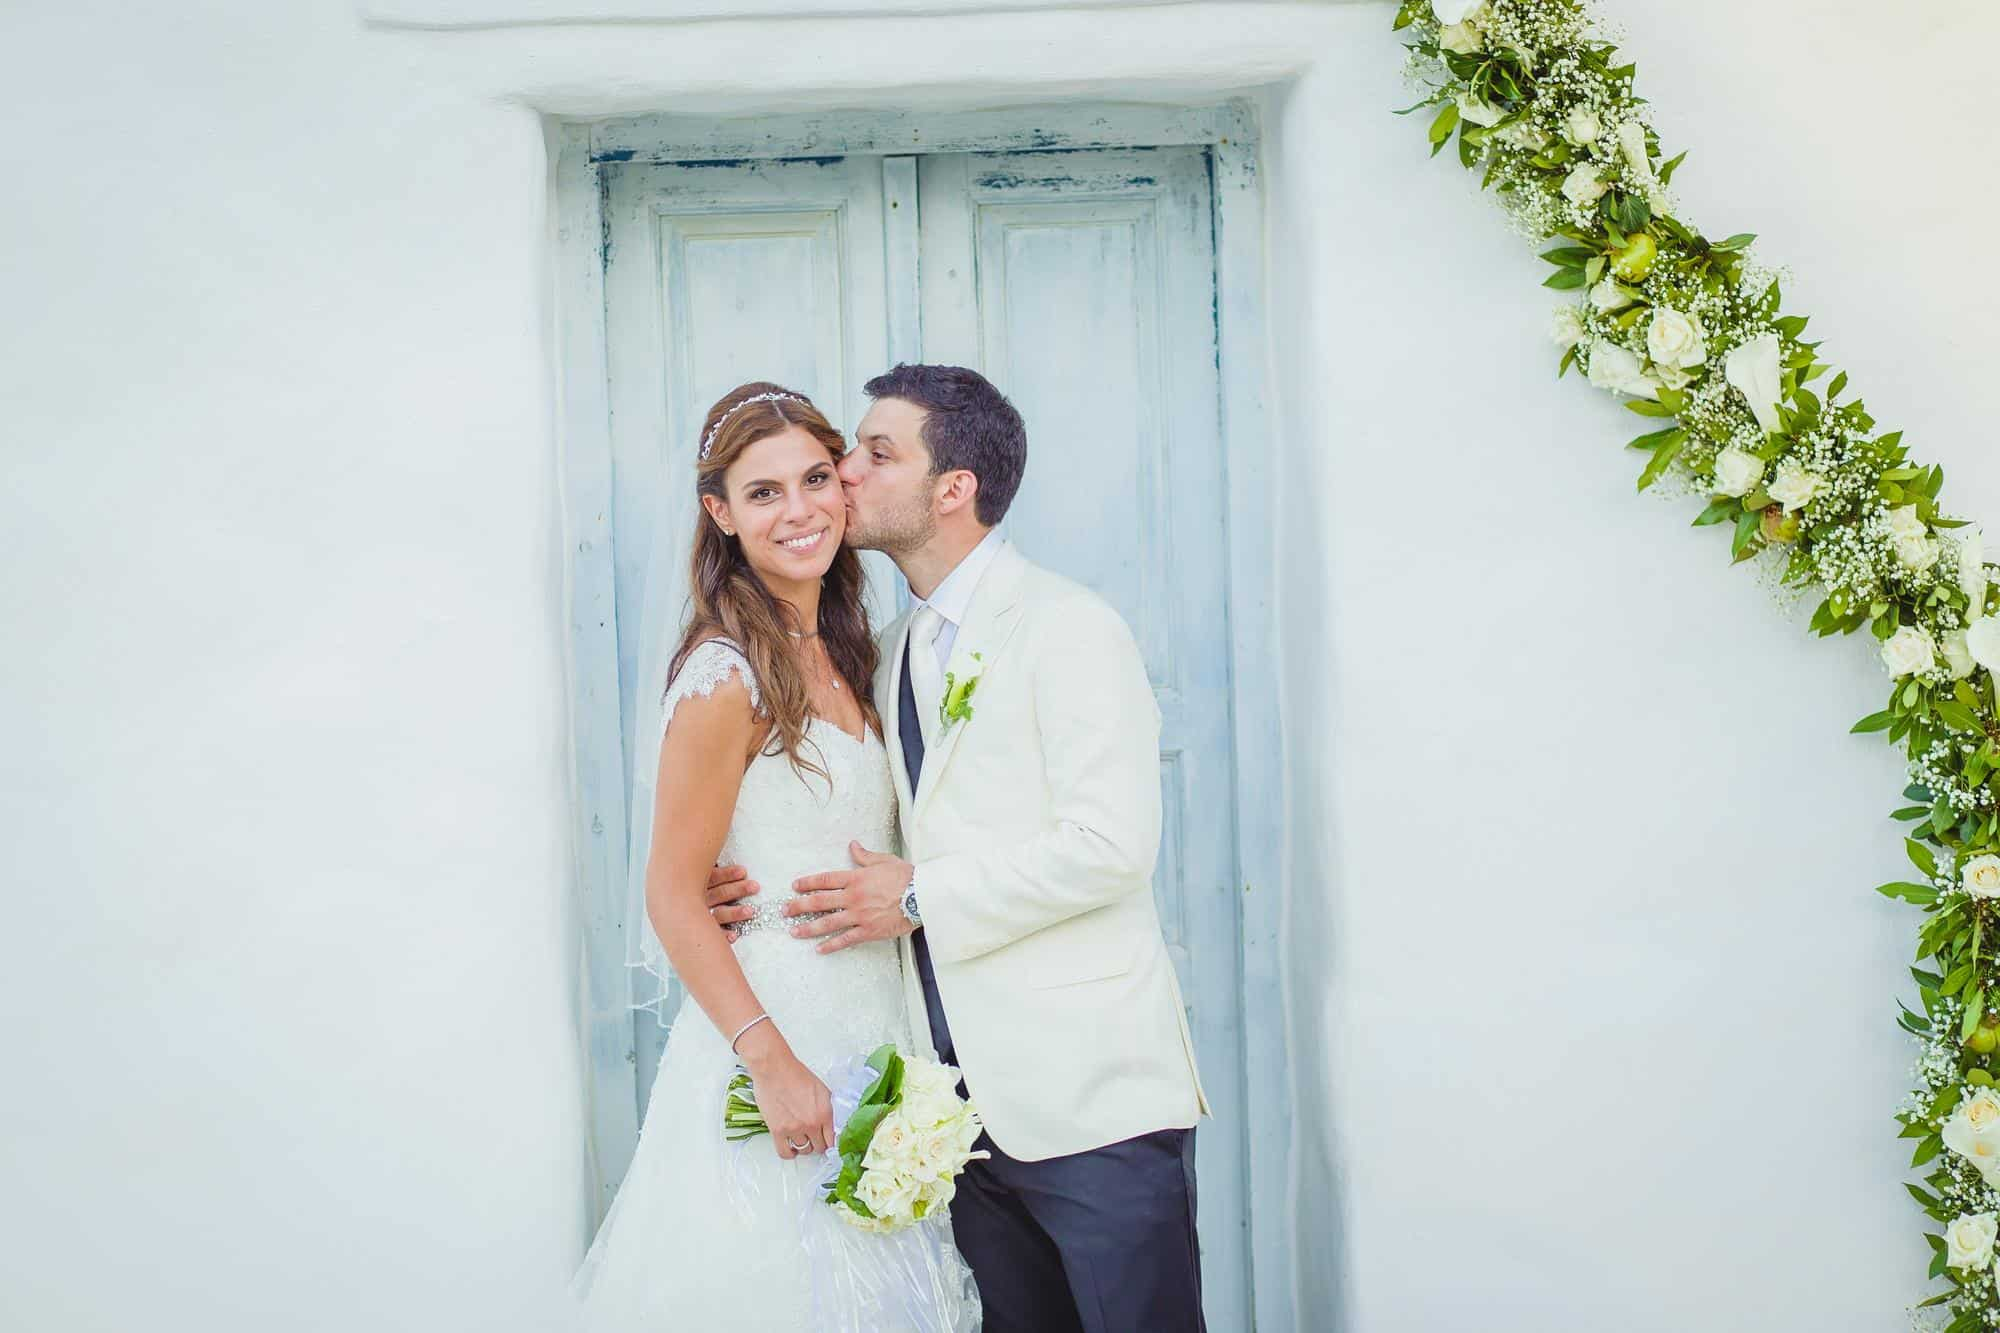 Wedding in island athens riviera 0051 2501 Photographic - Destination wedding photography